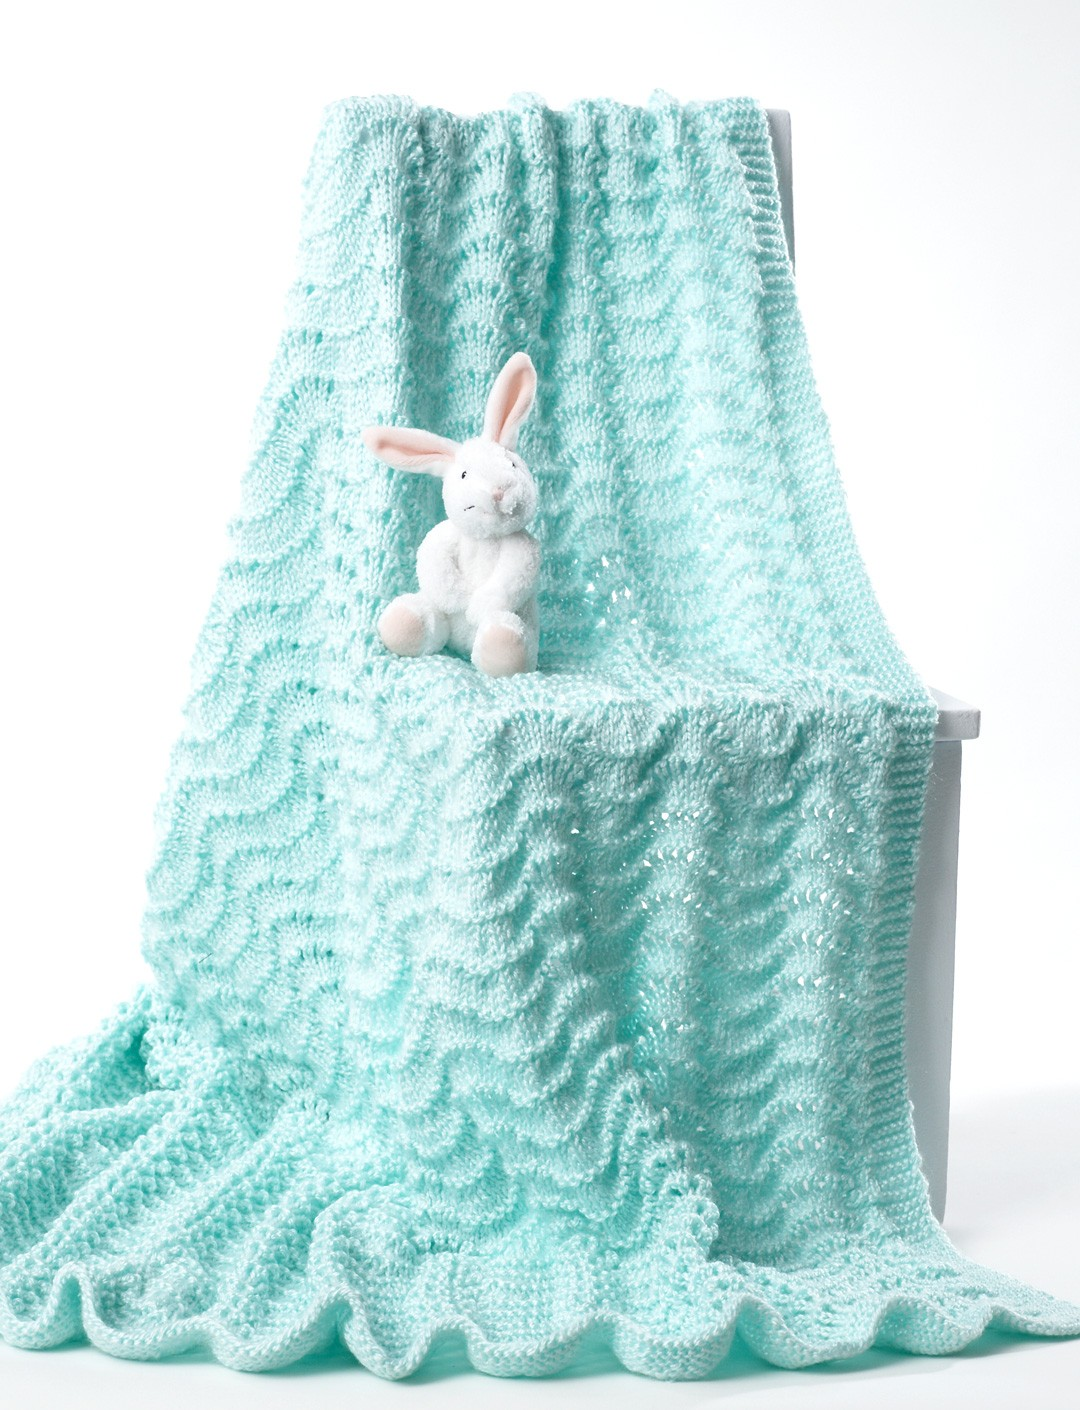 Knitting Patterns For Baby Comfort Blankets : Bernat Knit Baby Blanket, Knit Pattern Yarnspirations